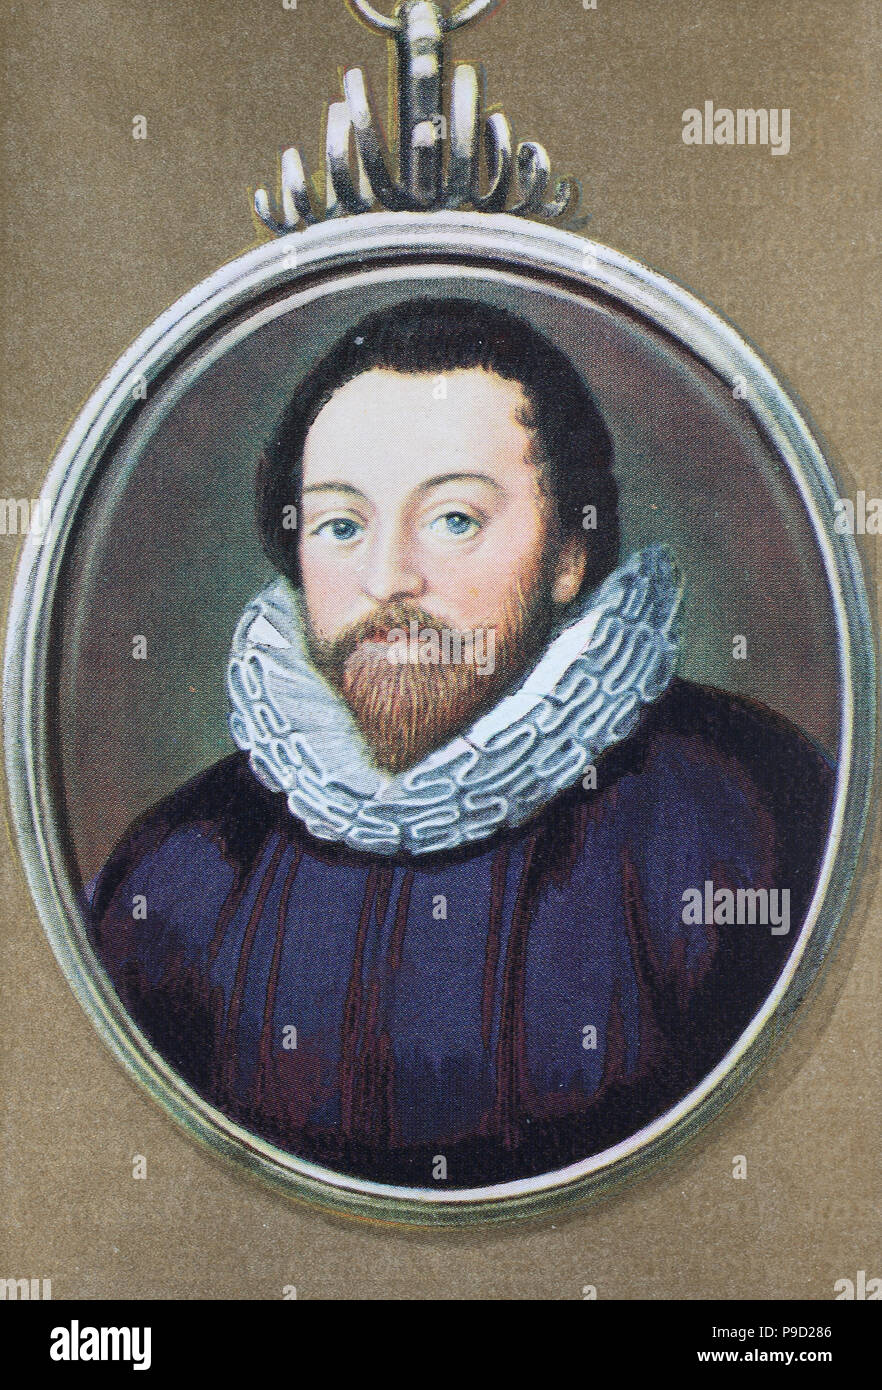 Sir Francis Drak, 1540 – 28 January 1596 was an English sea captain, privateer, slave trader, naval officer and explorer of the Elizabethan era, digital improved reproduction of an original print from the year 1900 - Stock Image